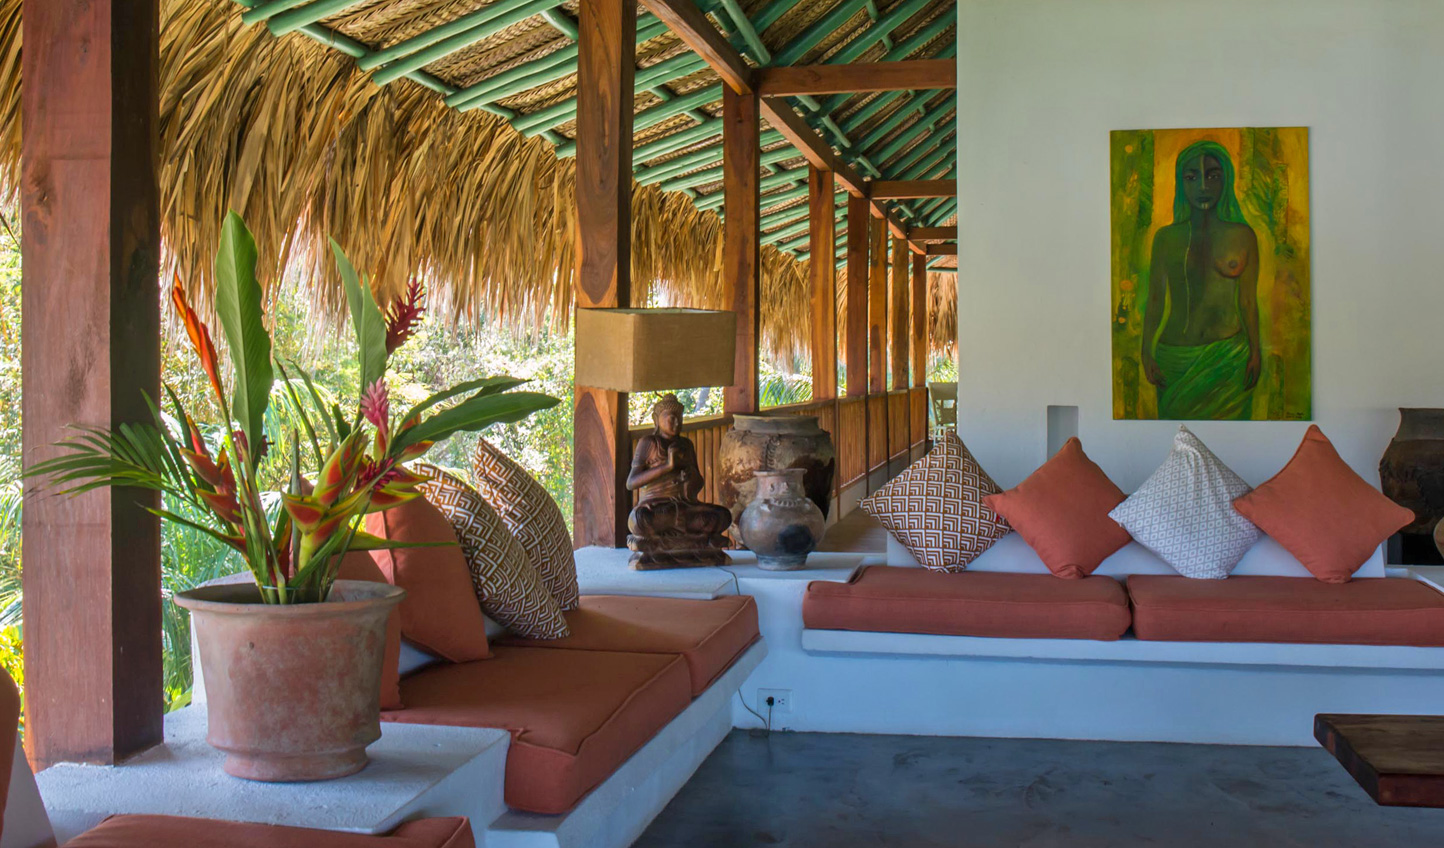 Jungle chic design makes you feel at home in the tropics